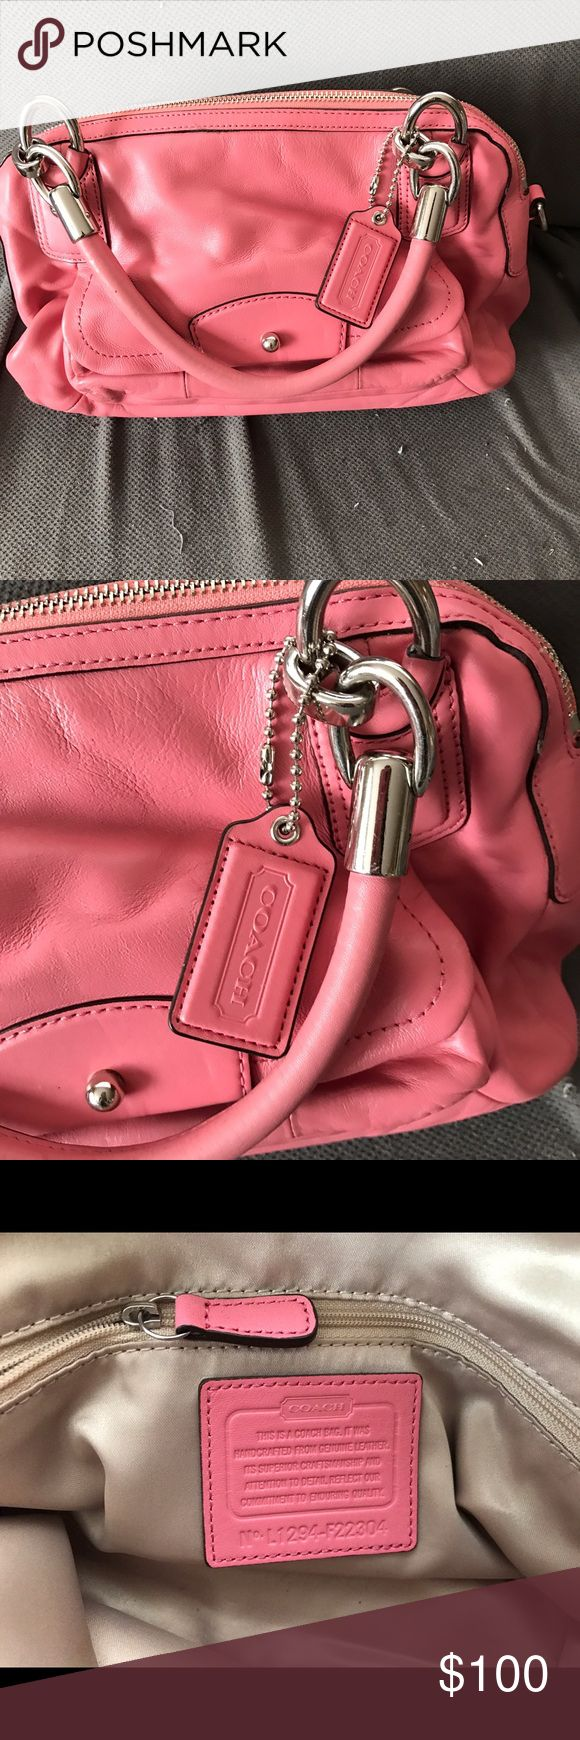 Authentic Leather Coach Purse This is an authentic pink leather Coach purse. Gently used. There are a few small stains inside that I will try to clean. Coach Bags Totes